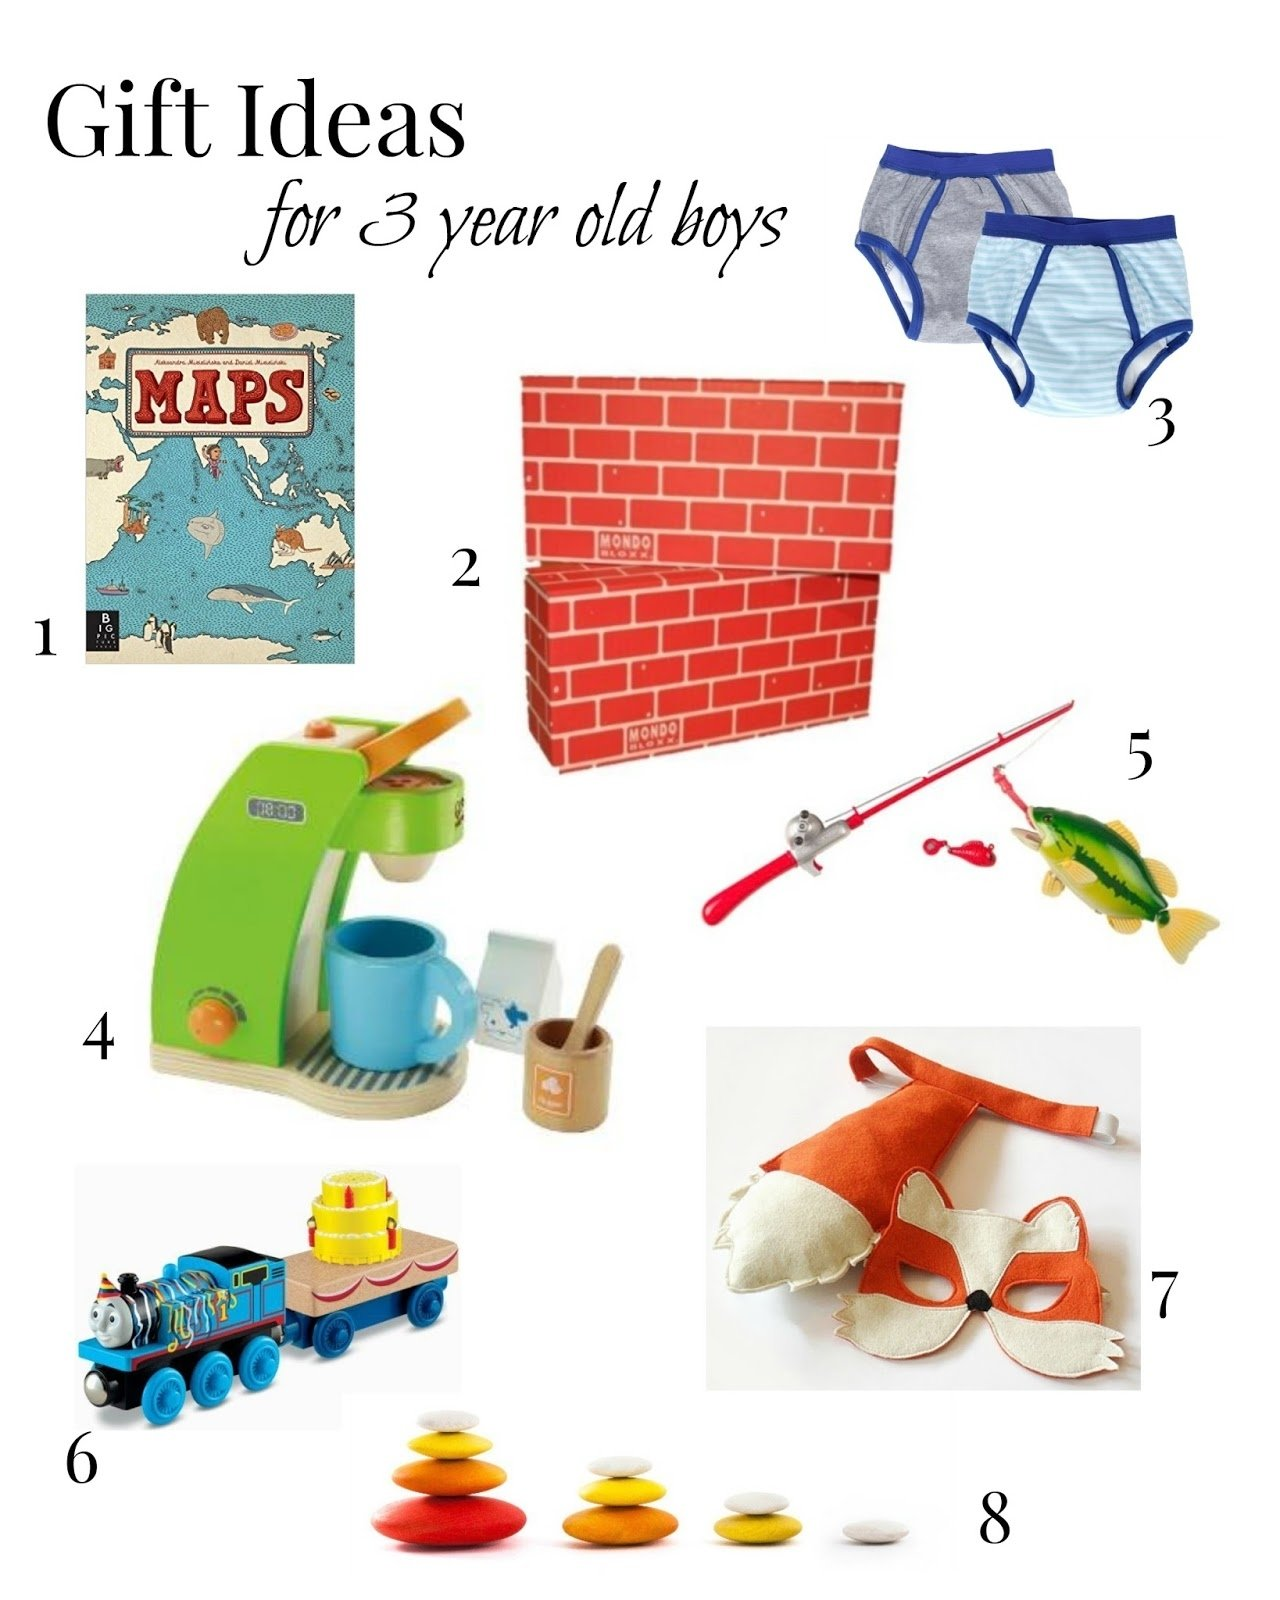 10 Wonderful Gift Ideas 3 Year Old pink to green friday favorites gift ideas for 3 year old boys 8 2020